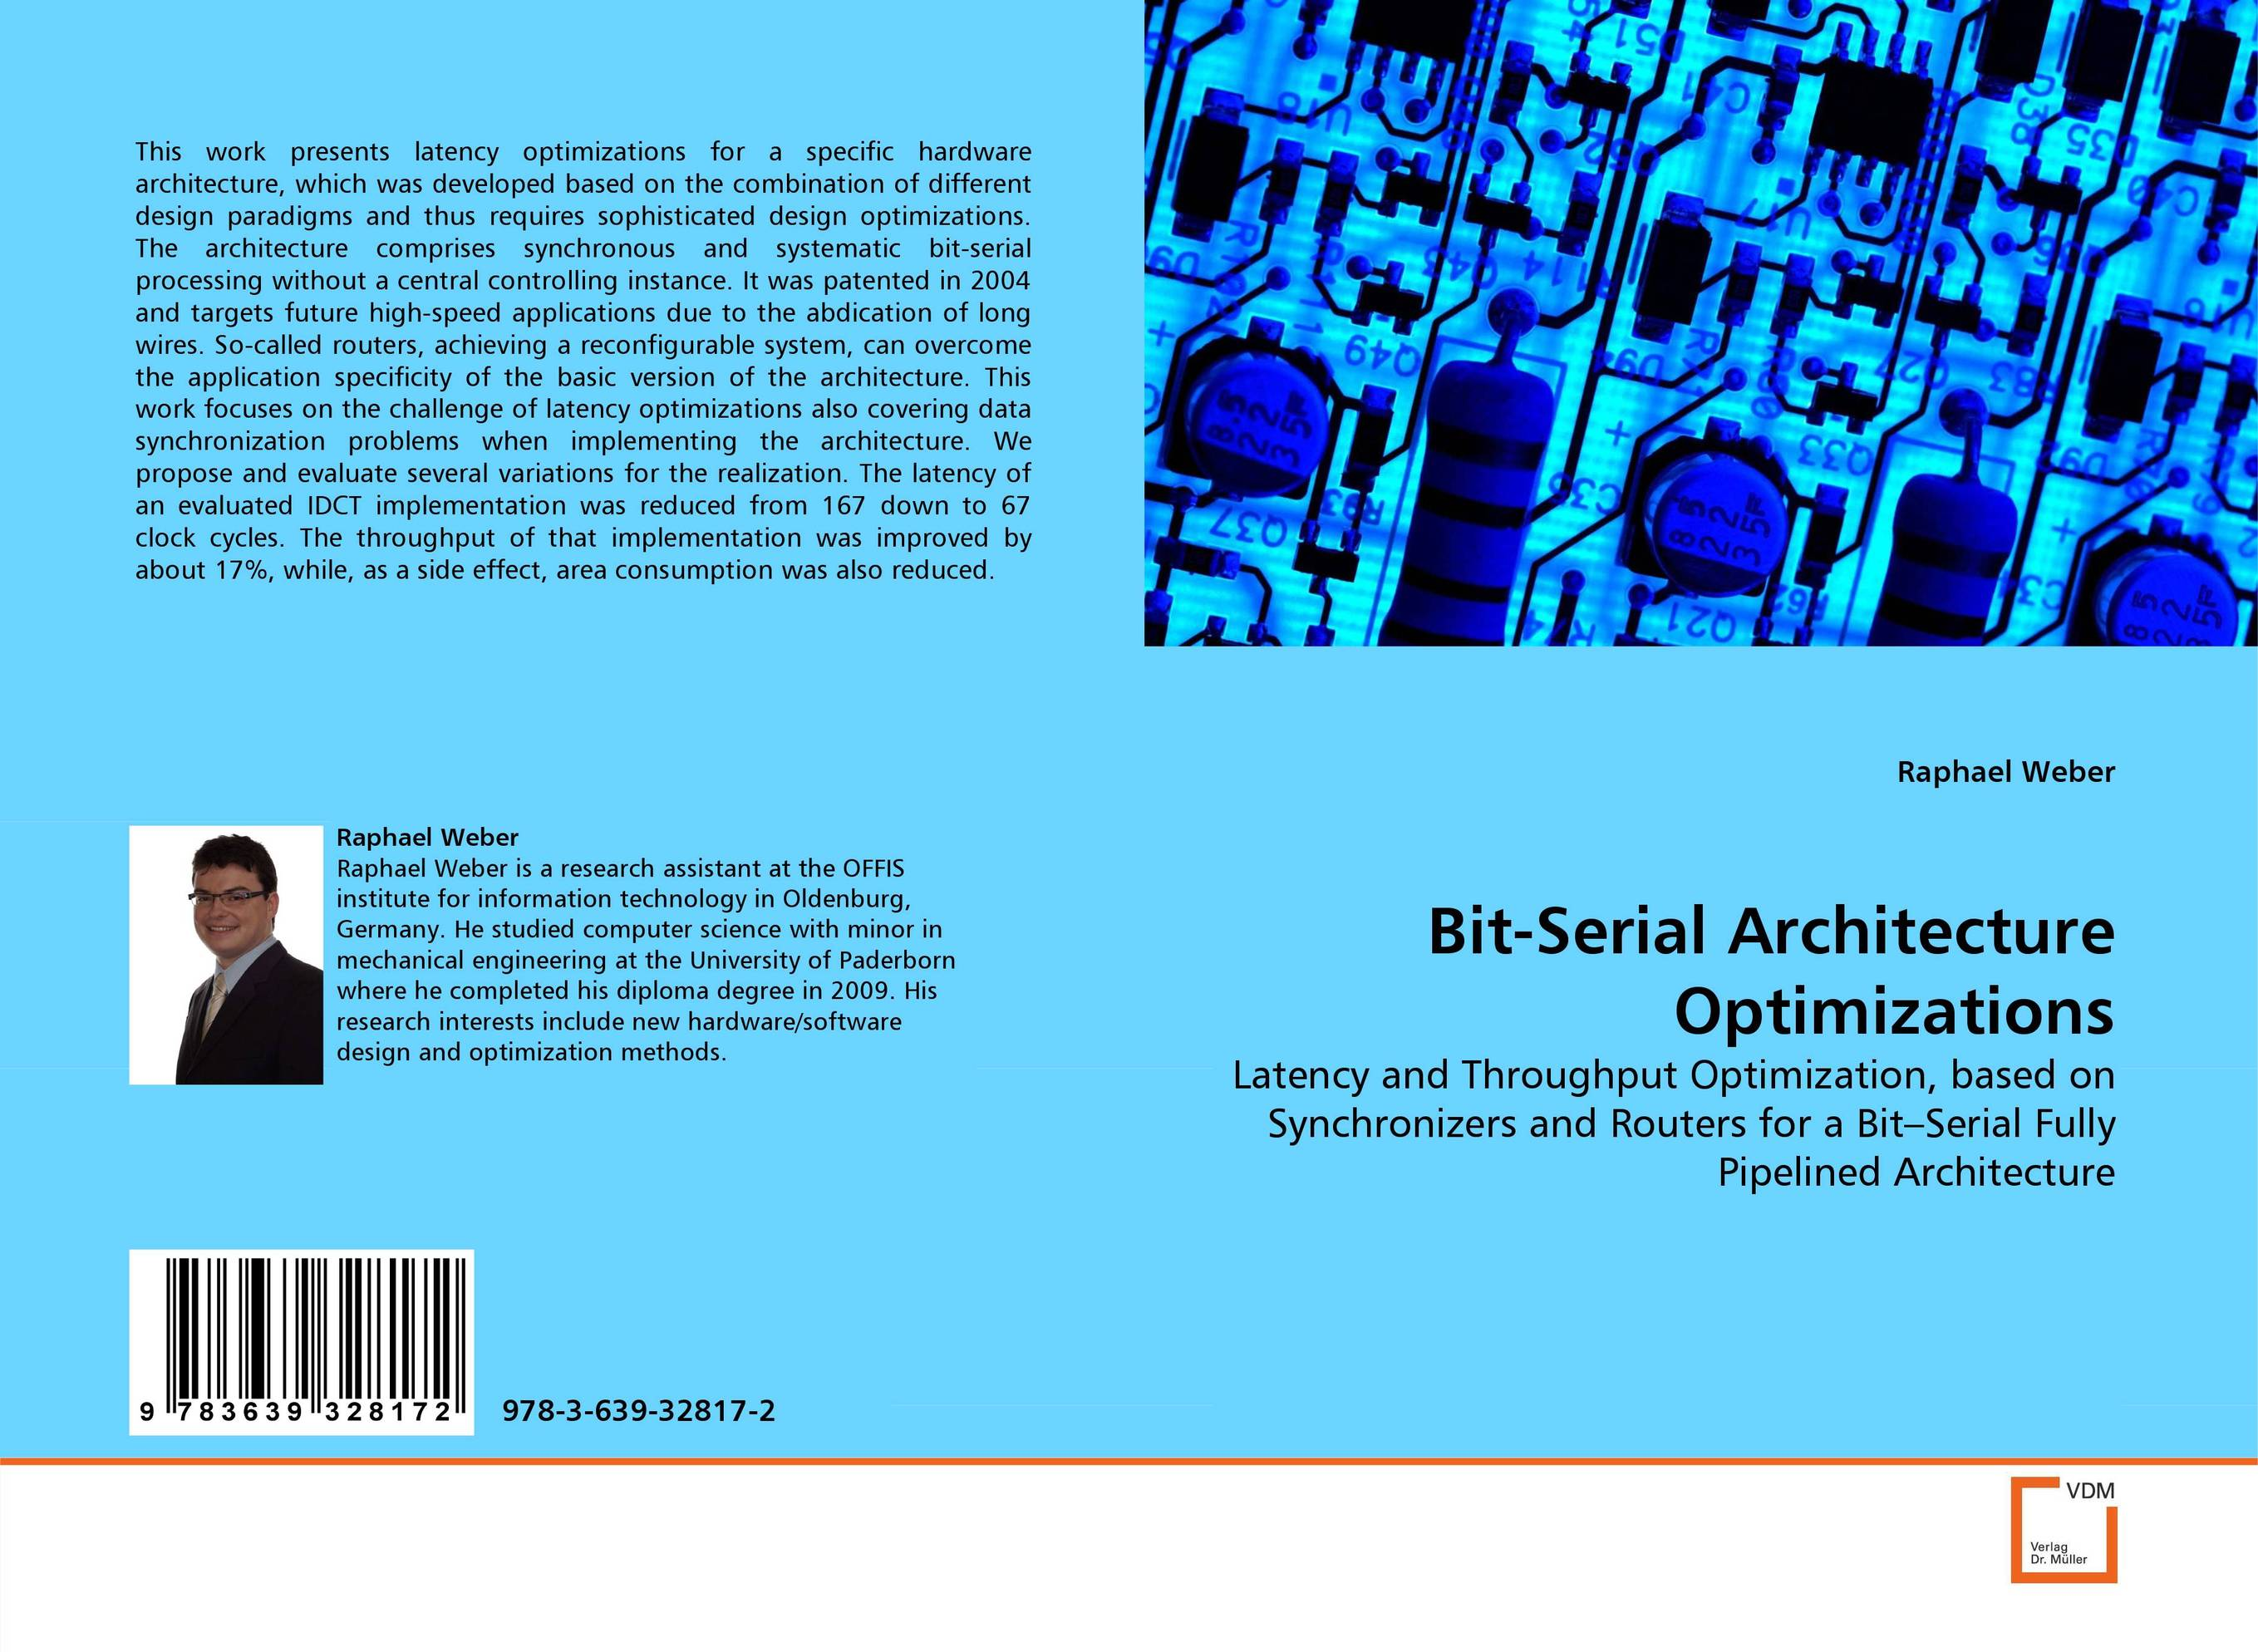 Bit-Serial Architecture Optimizations